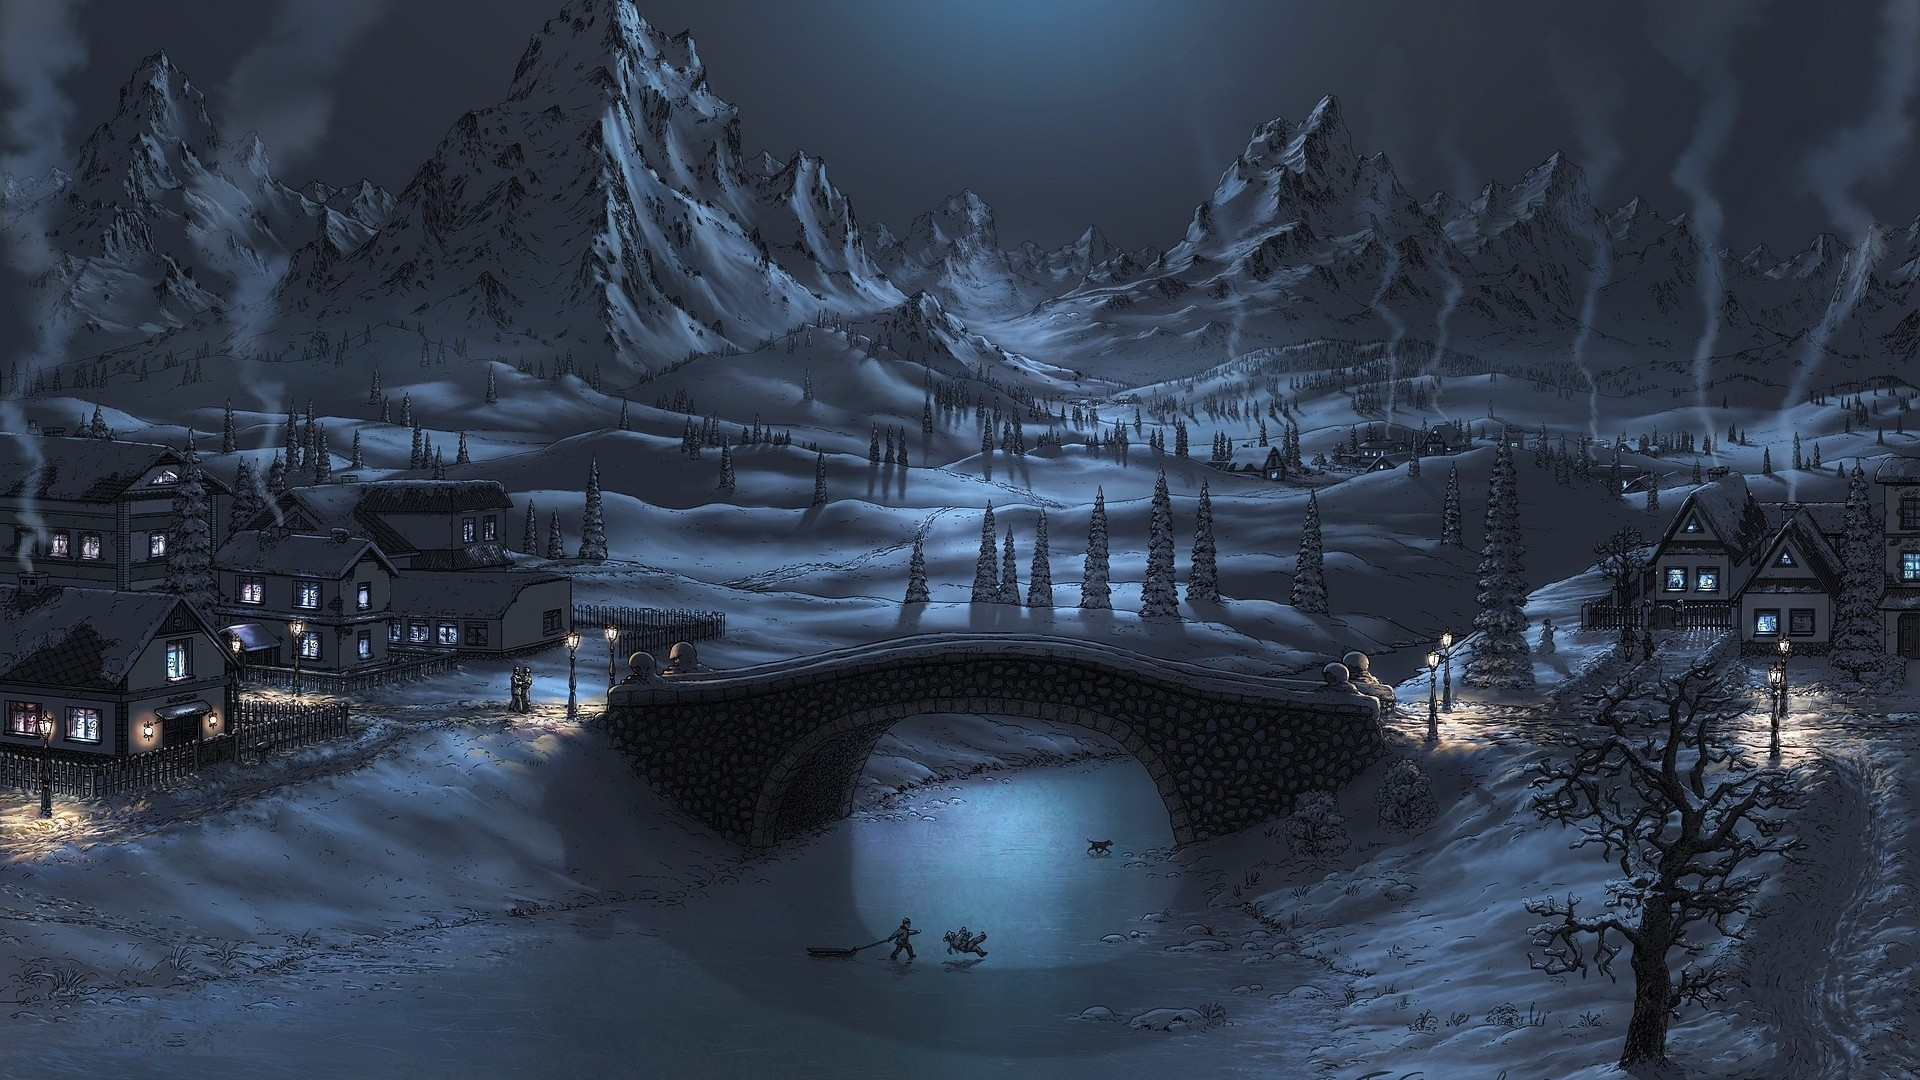 Res: 1920x1080, Night Winter Landscape Wallpaper Desktop Wallpaper